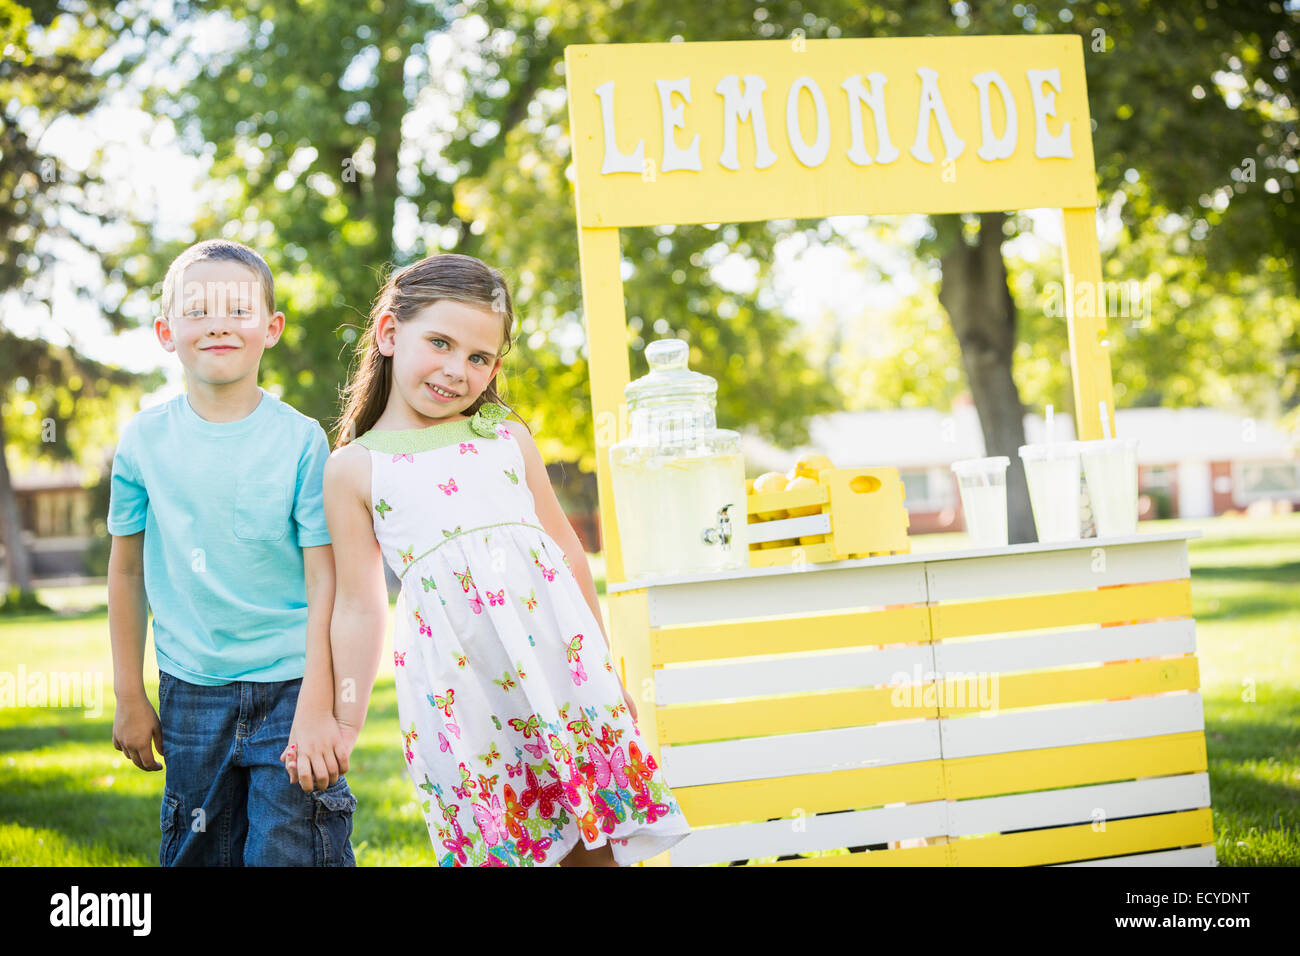 Young brother and sister smiling at lemonade stand Banque D'Images